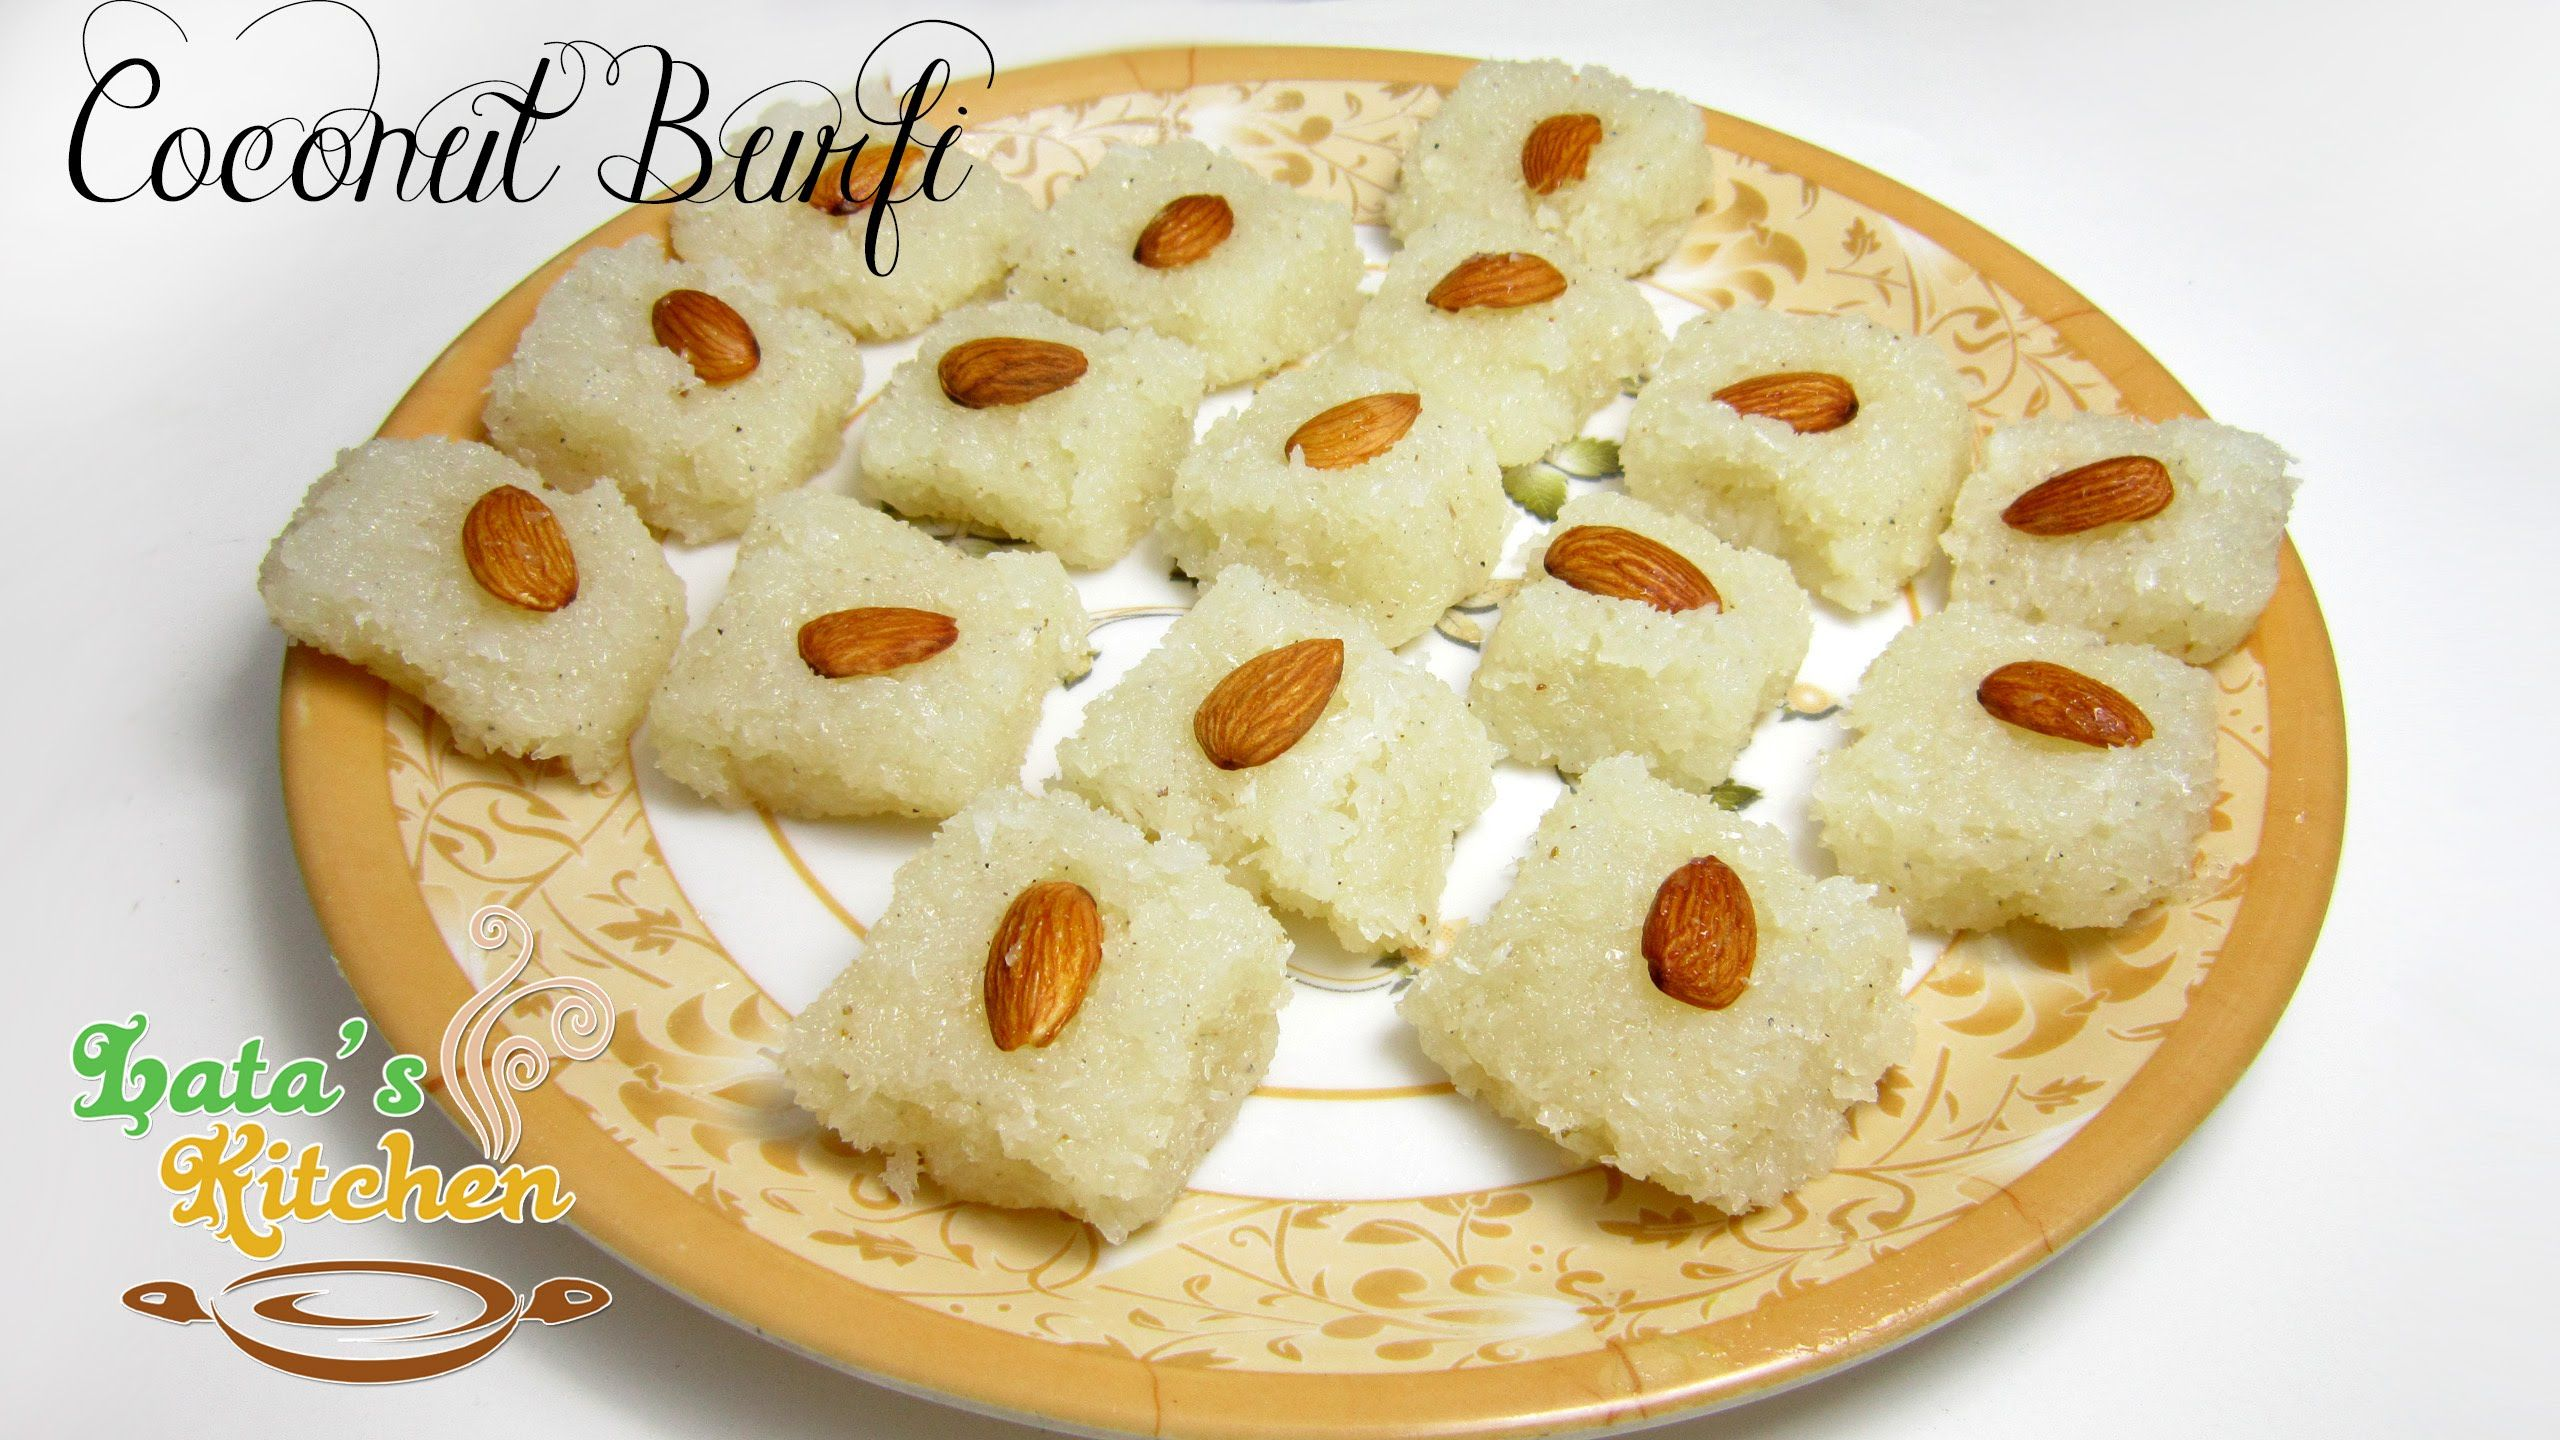 Coconut burfi recipe without khoa indian vegetarian dessert recipe coconut burfi recipe without khoa indian vegetarian dessert recipe in hindi with english subtitles forumfinder Image collections